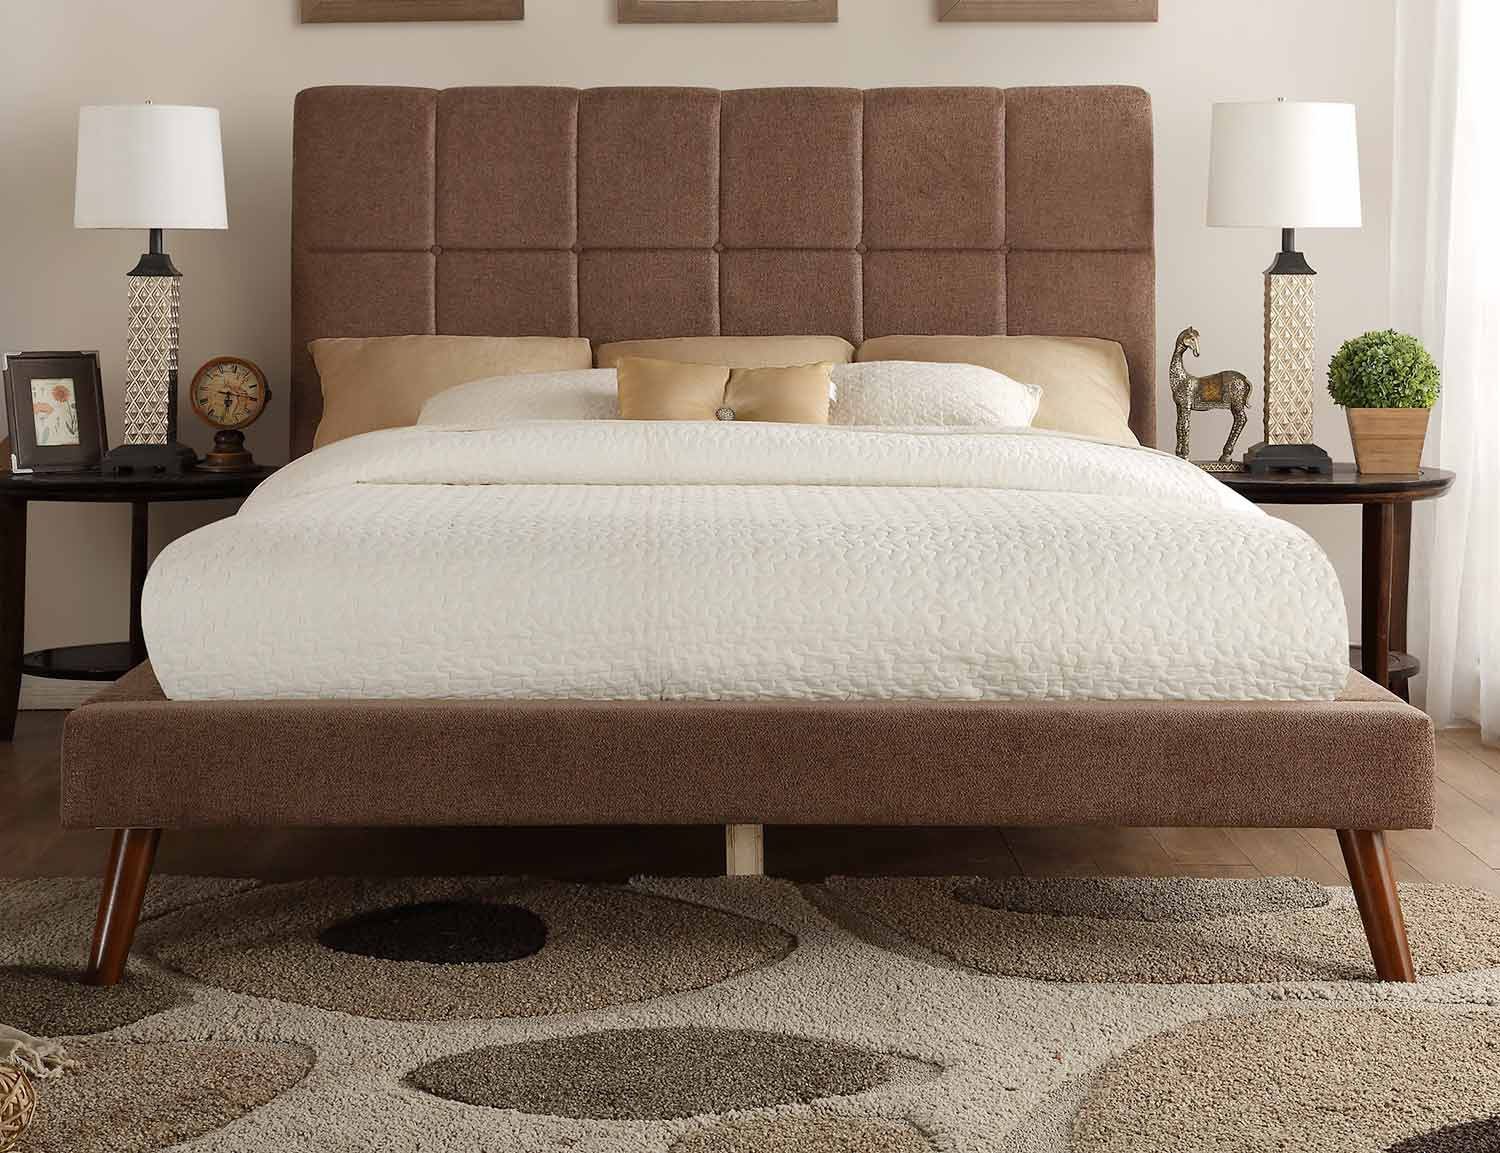 Homelegance Kinsale Upholstered Bed - Brown